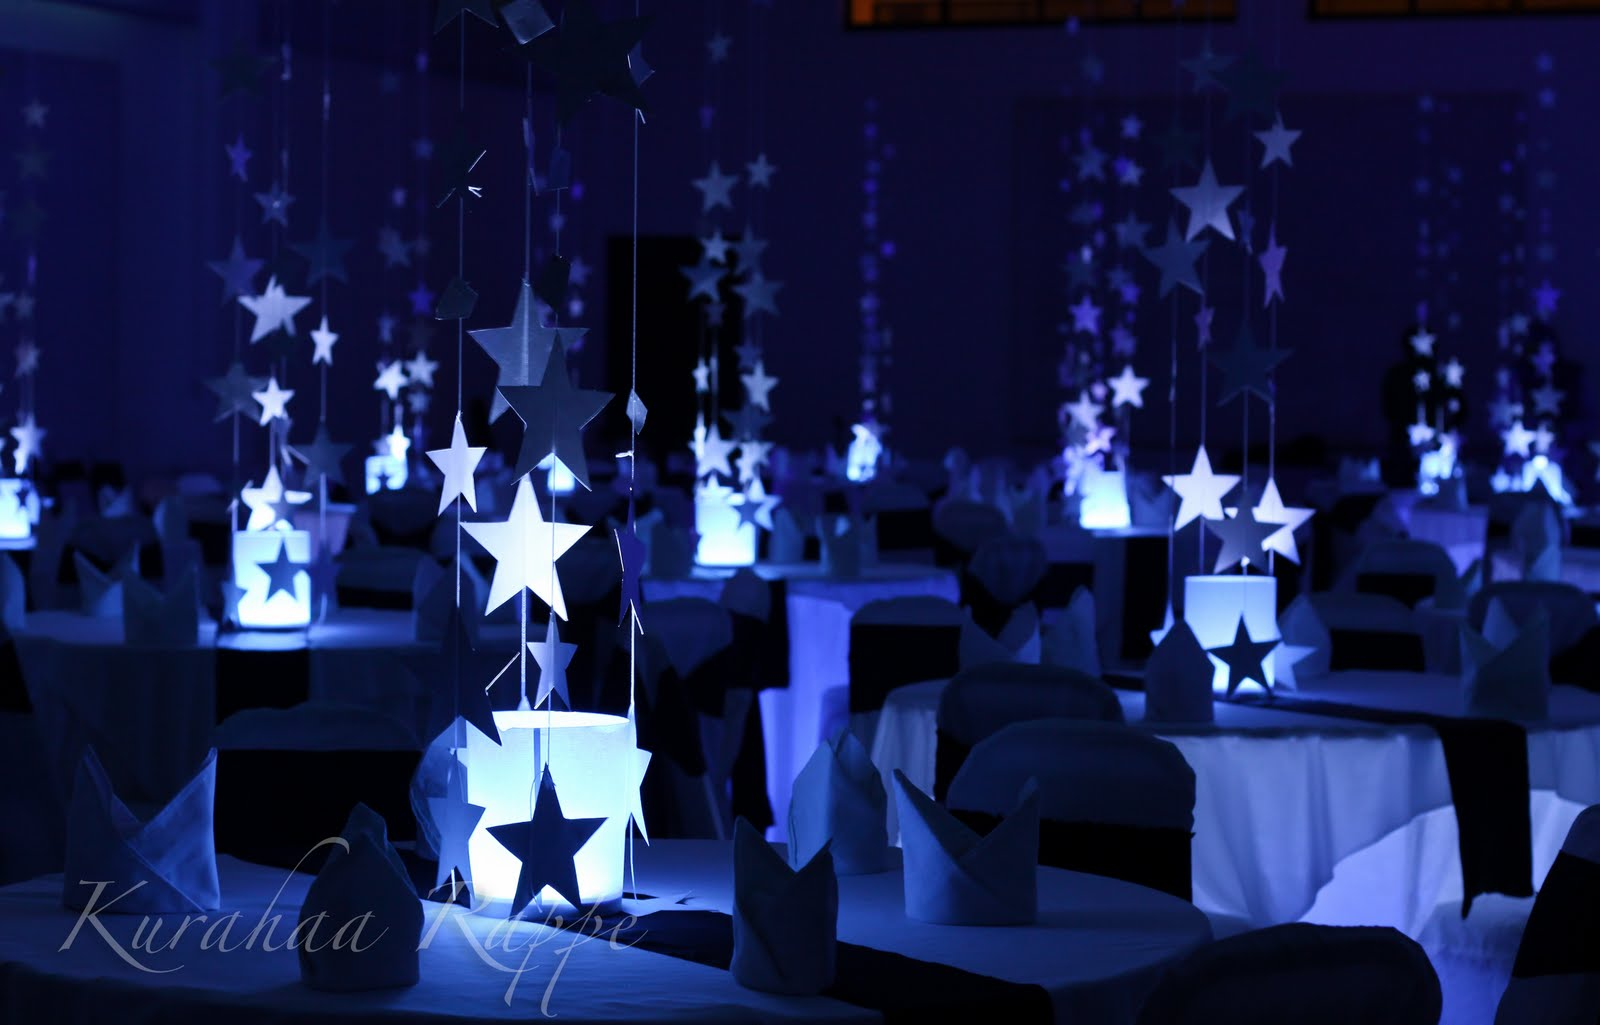 Kurahaa Re Stars Wedding Set And Decoration